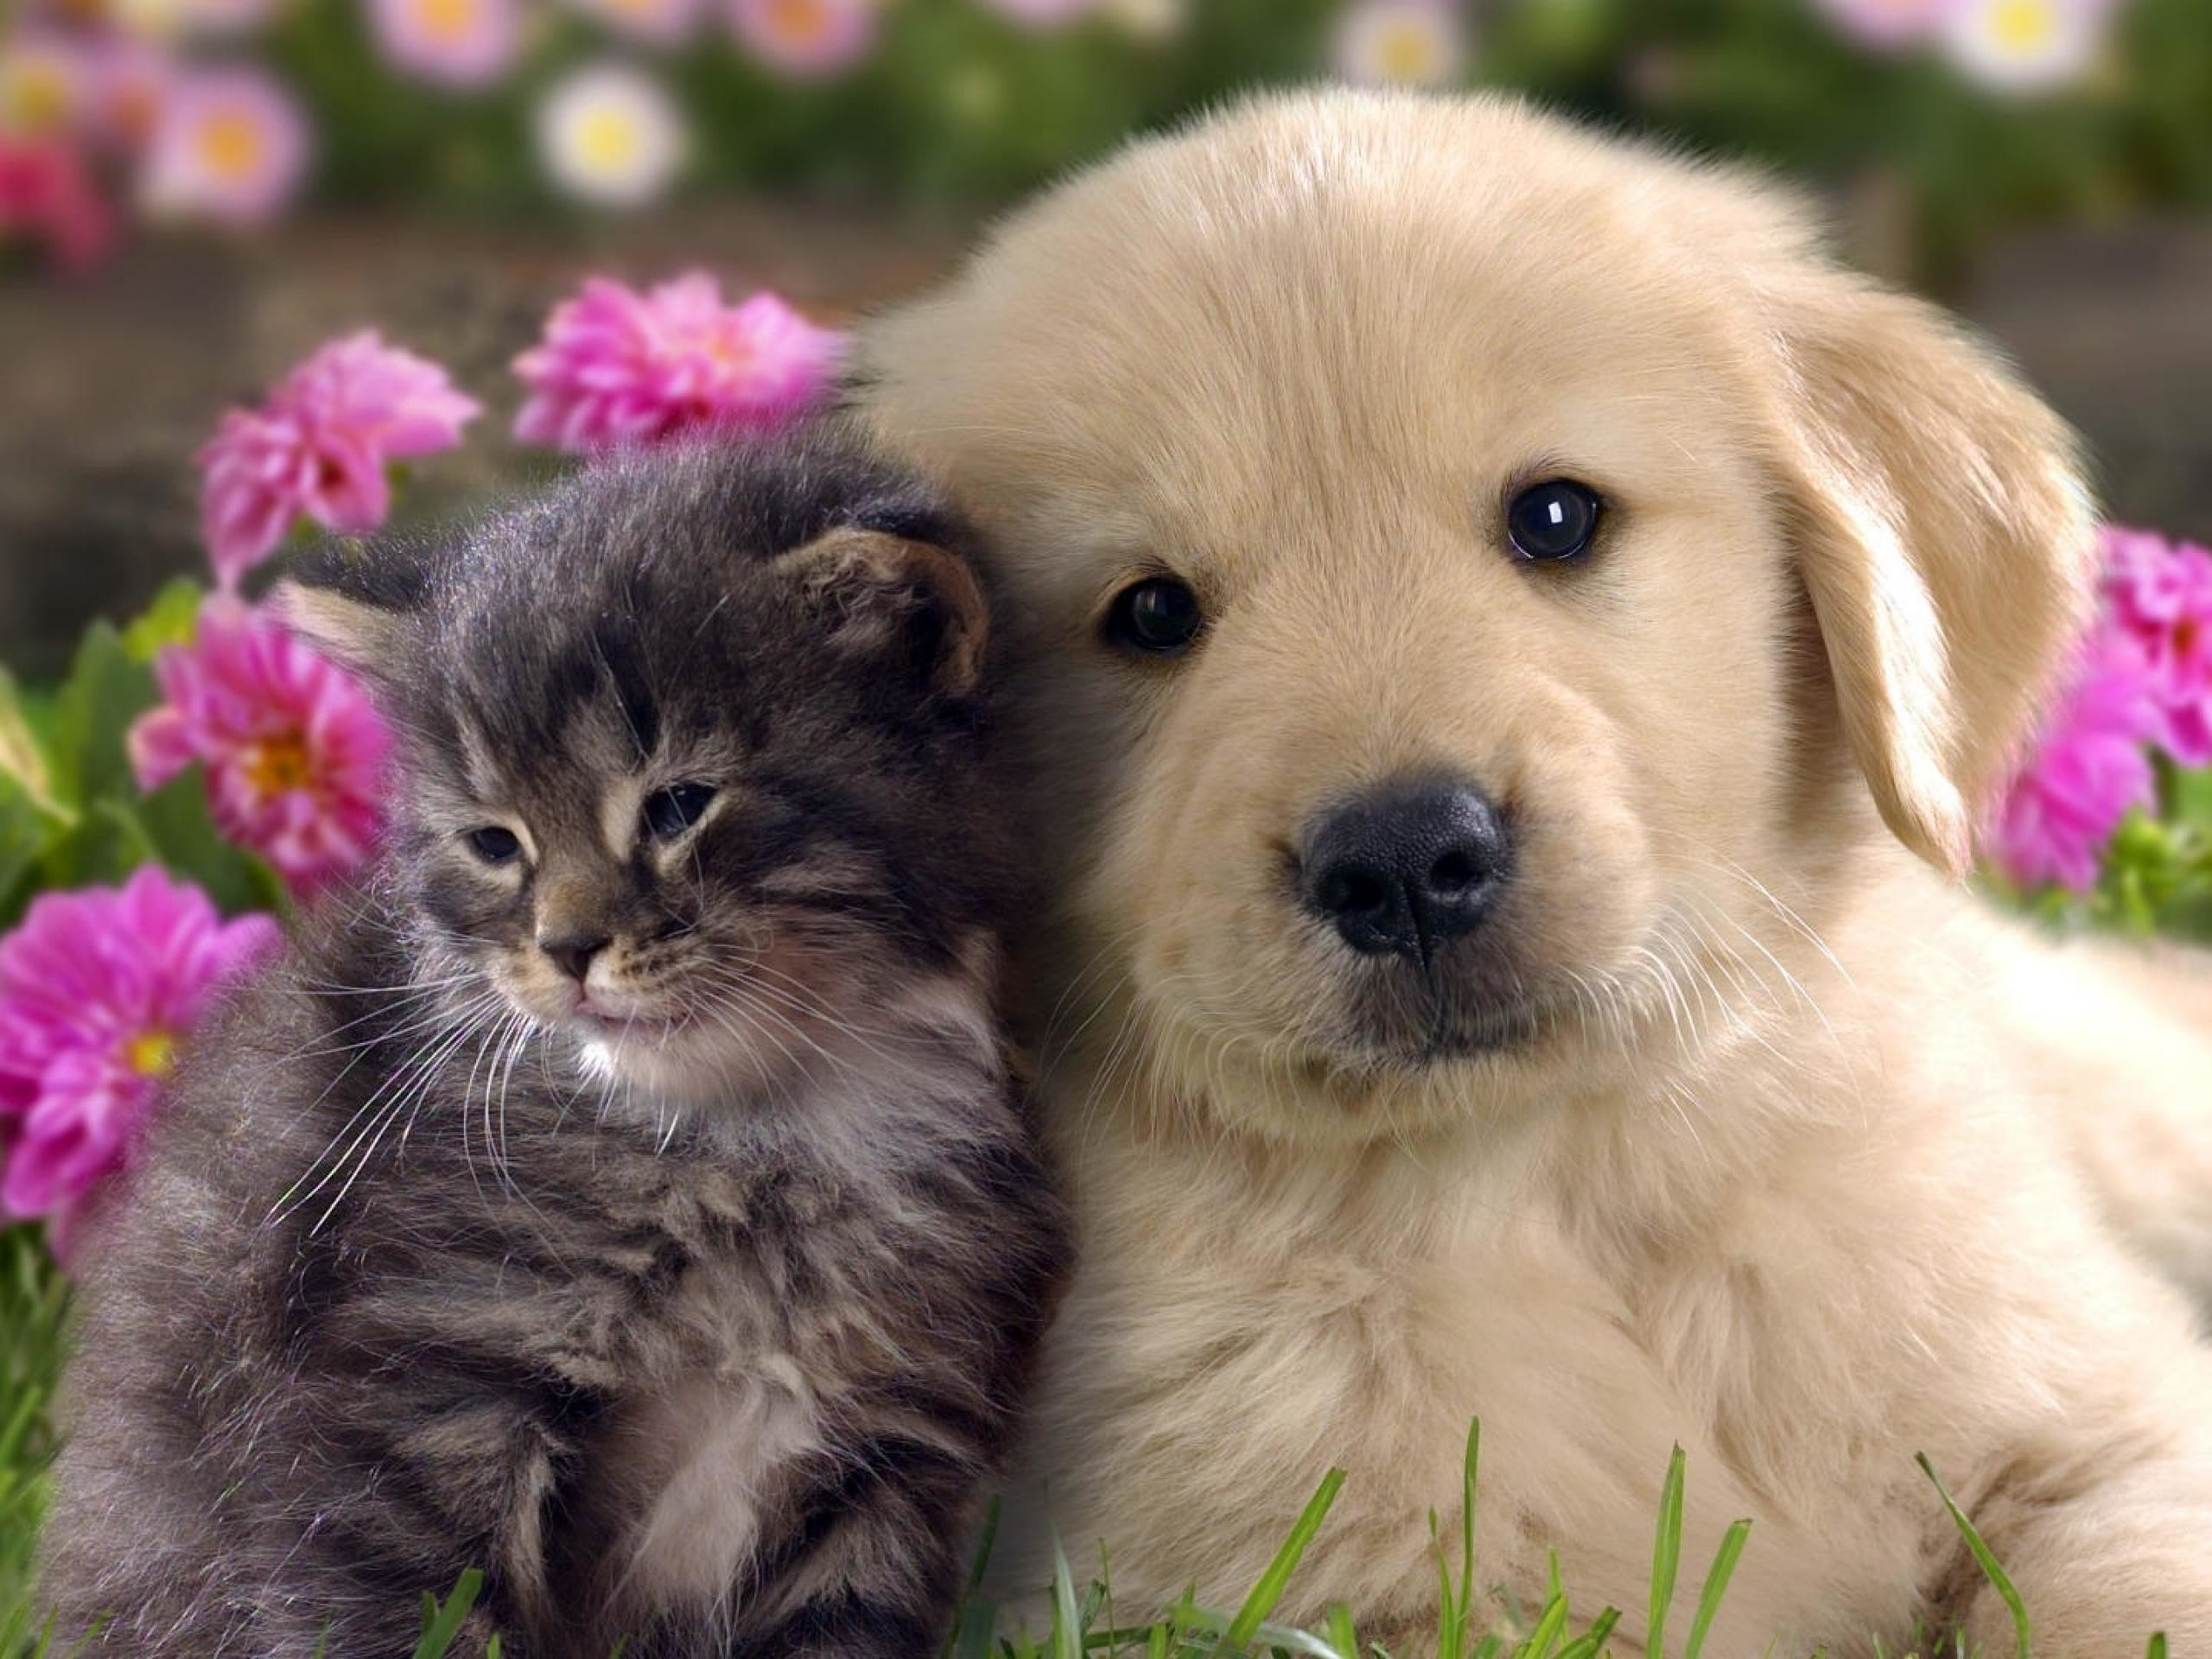 cat and dog funny images download